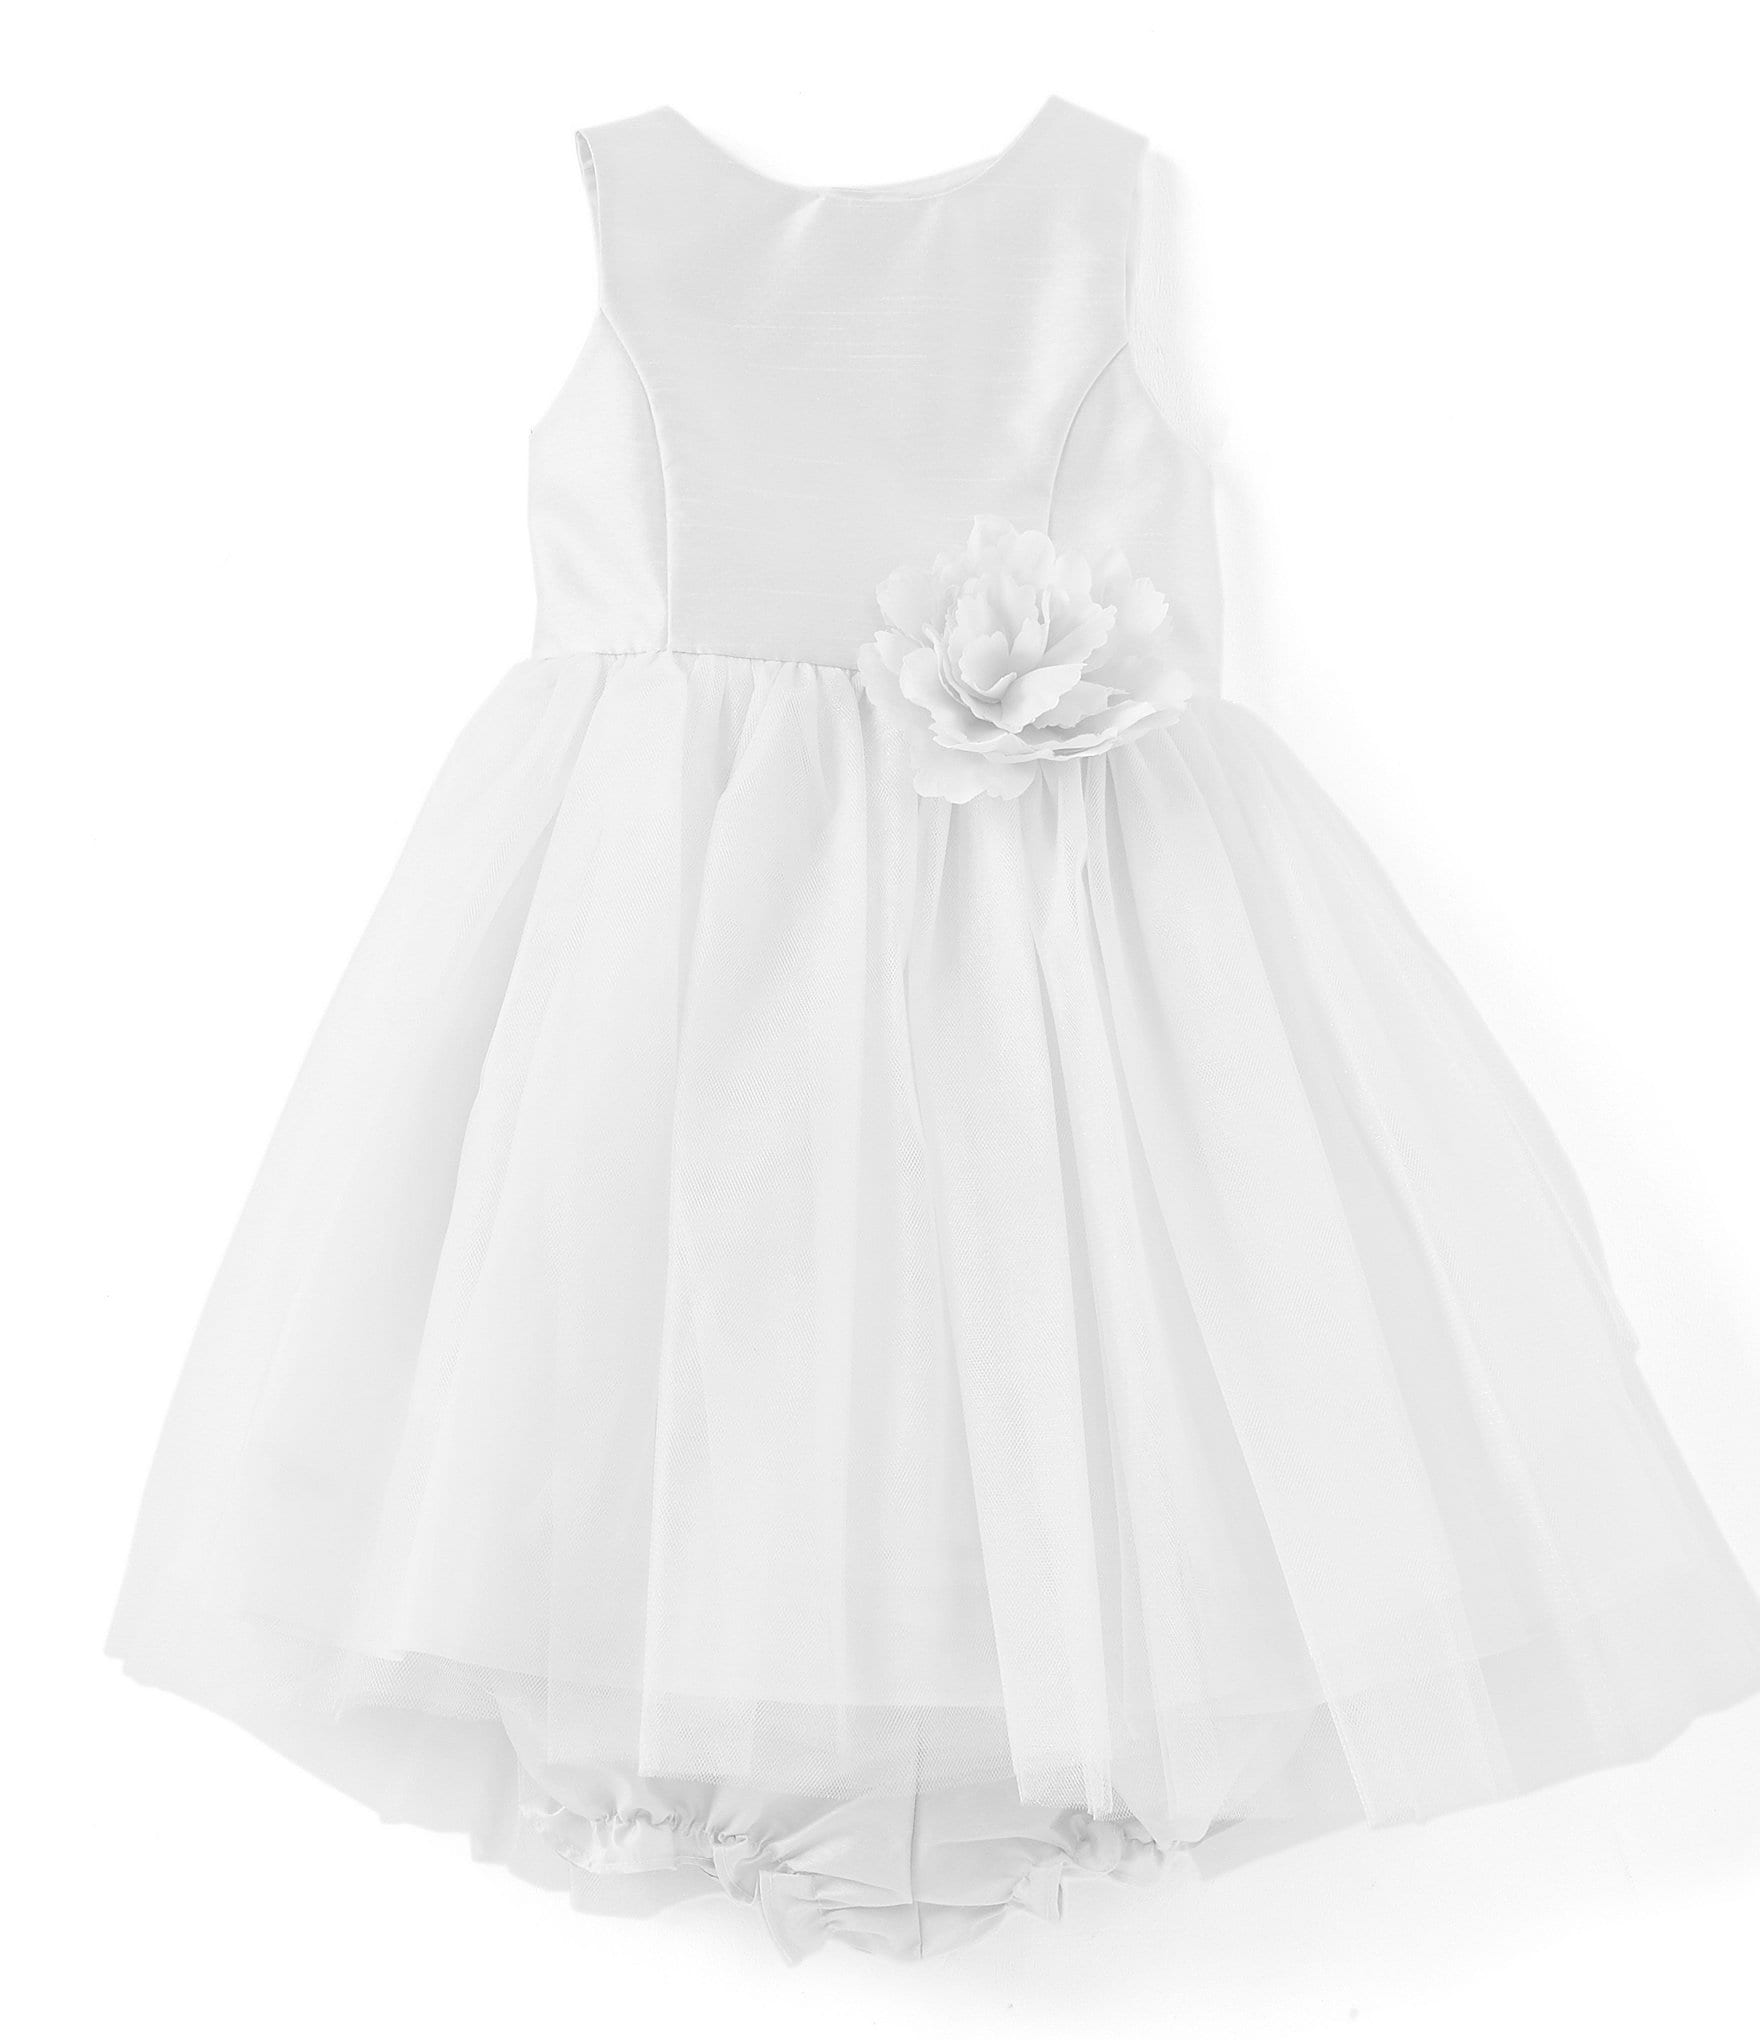 54b7e782afd Pippa   Julie Baby Girls 12-24 Months Flower-Appliqued Ballerina Dress